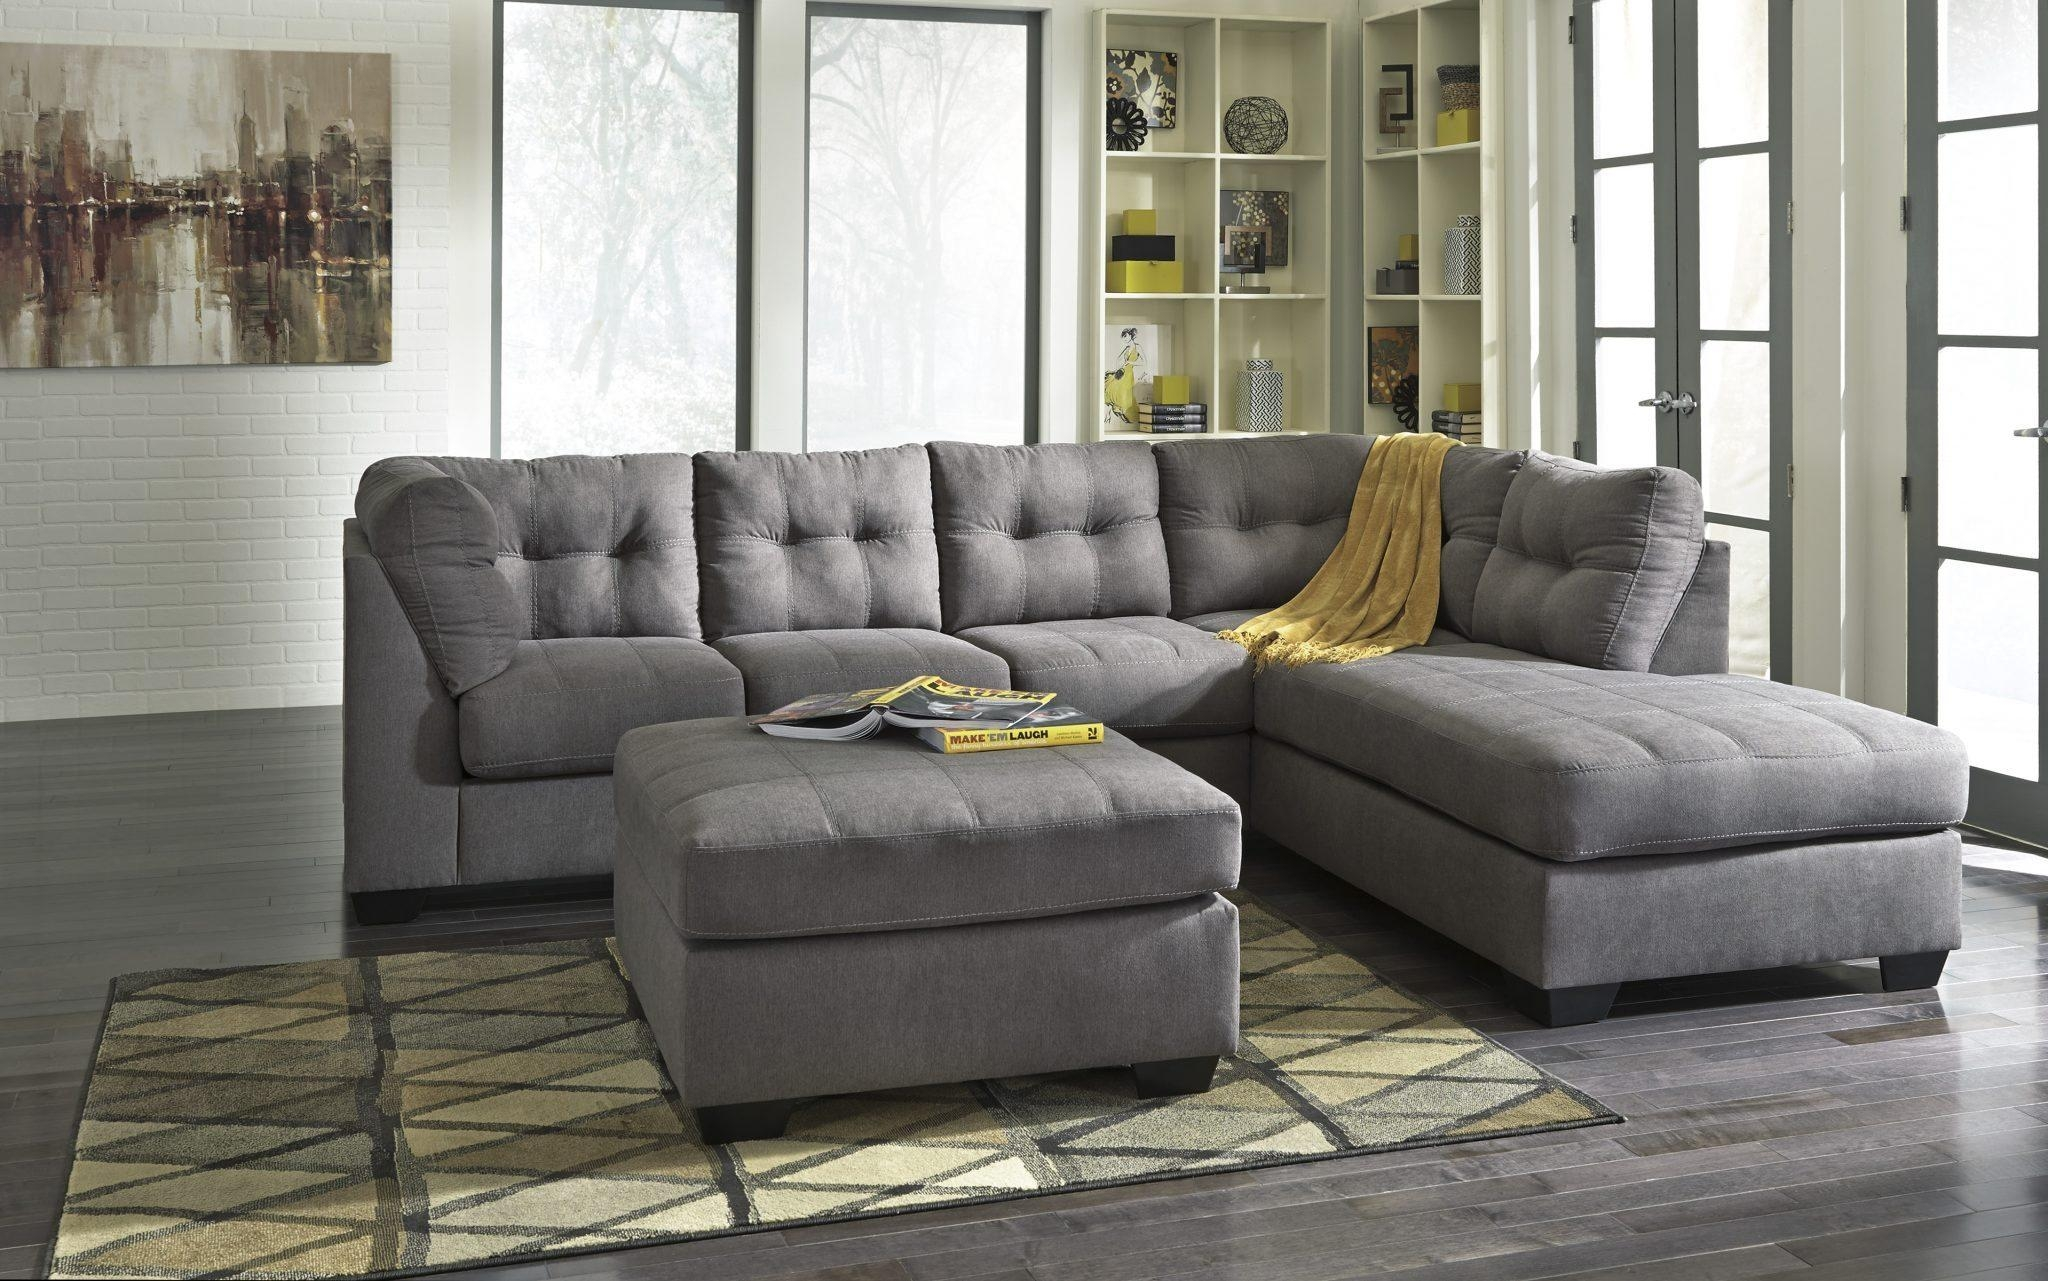 Best Furniture Mentor Oh: Furniture Store – Ashley Furniture With Ashley Corduroy Sectional Sofas (Image 6 of 20)